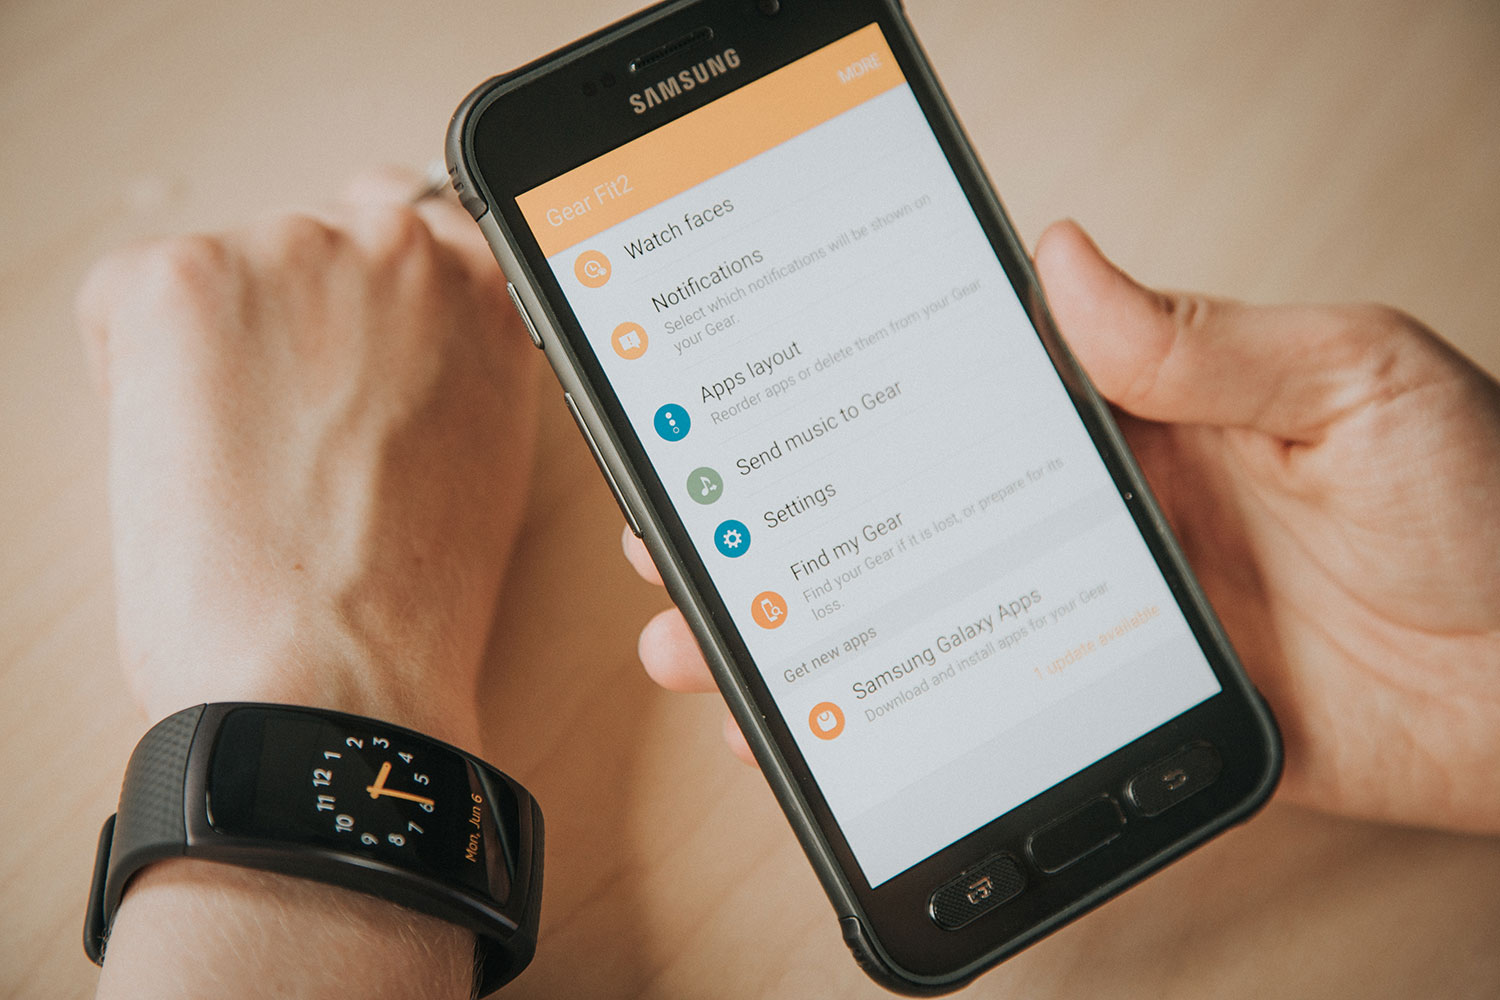 Samsung adds new features to S Health to make exercise ...